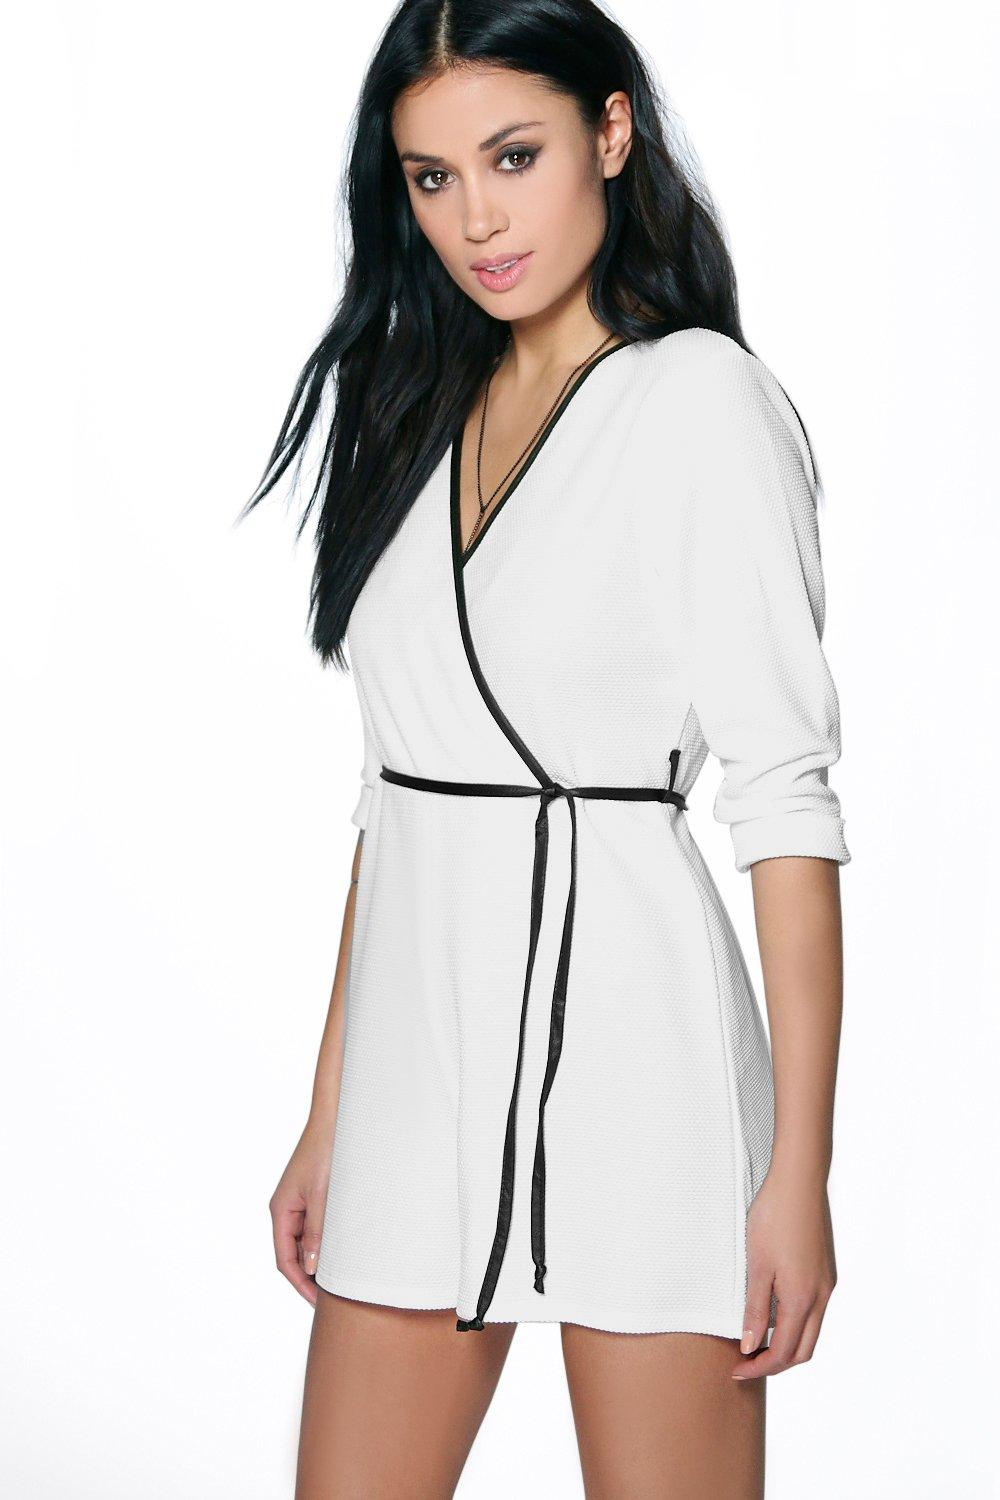 Lola Leather Look Trim Wrap Belted Playsuit